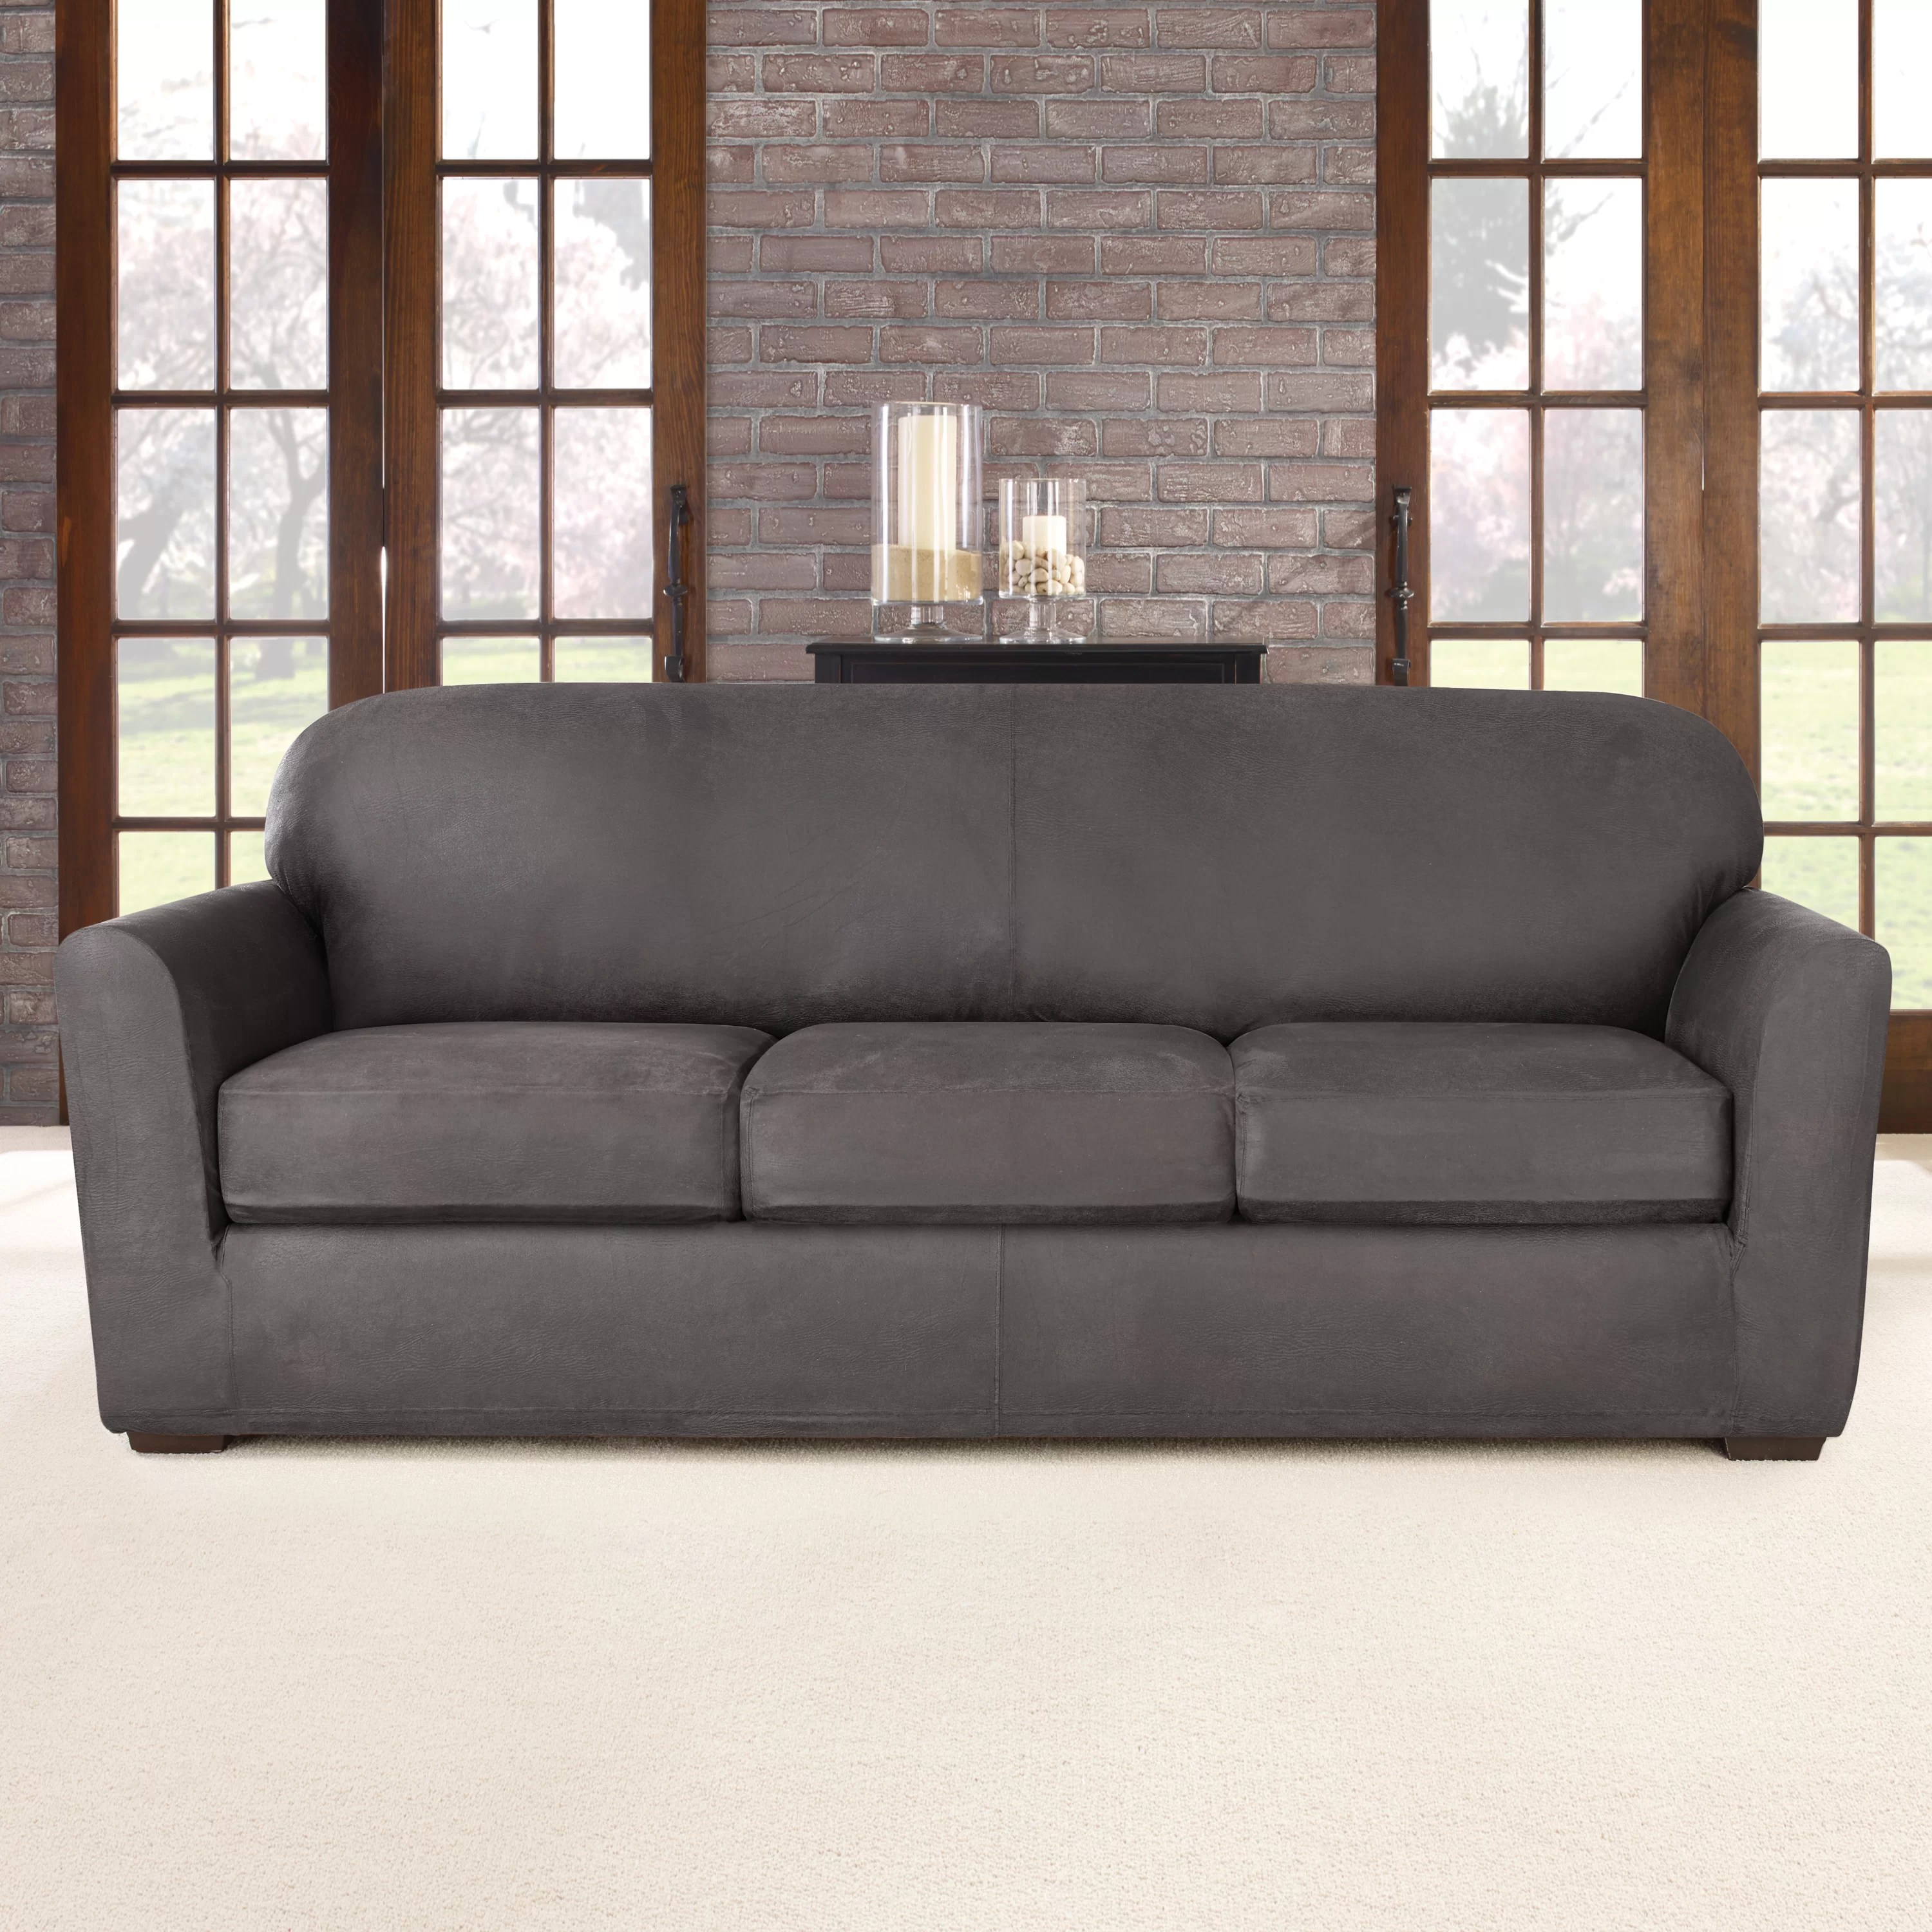 sure fit stretch pique 3 piece t cushion sofa slipcover brand reviews slipcovers for category thesofa